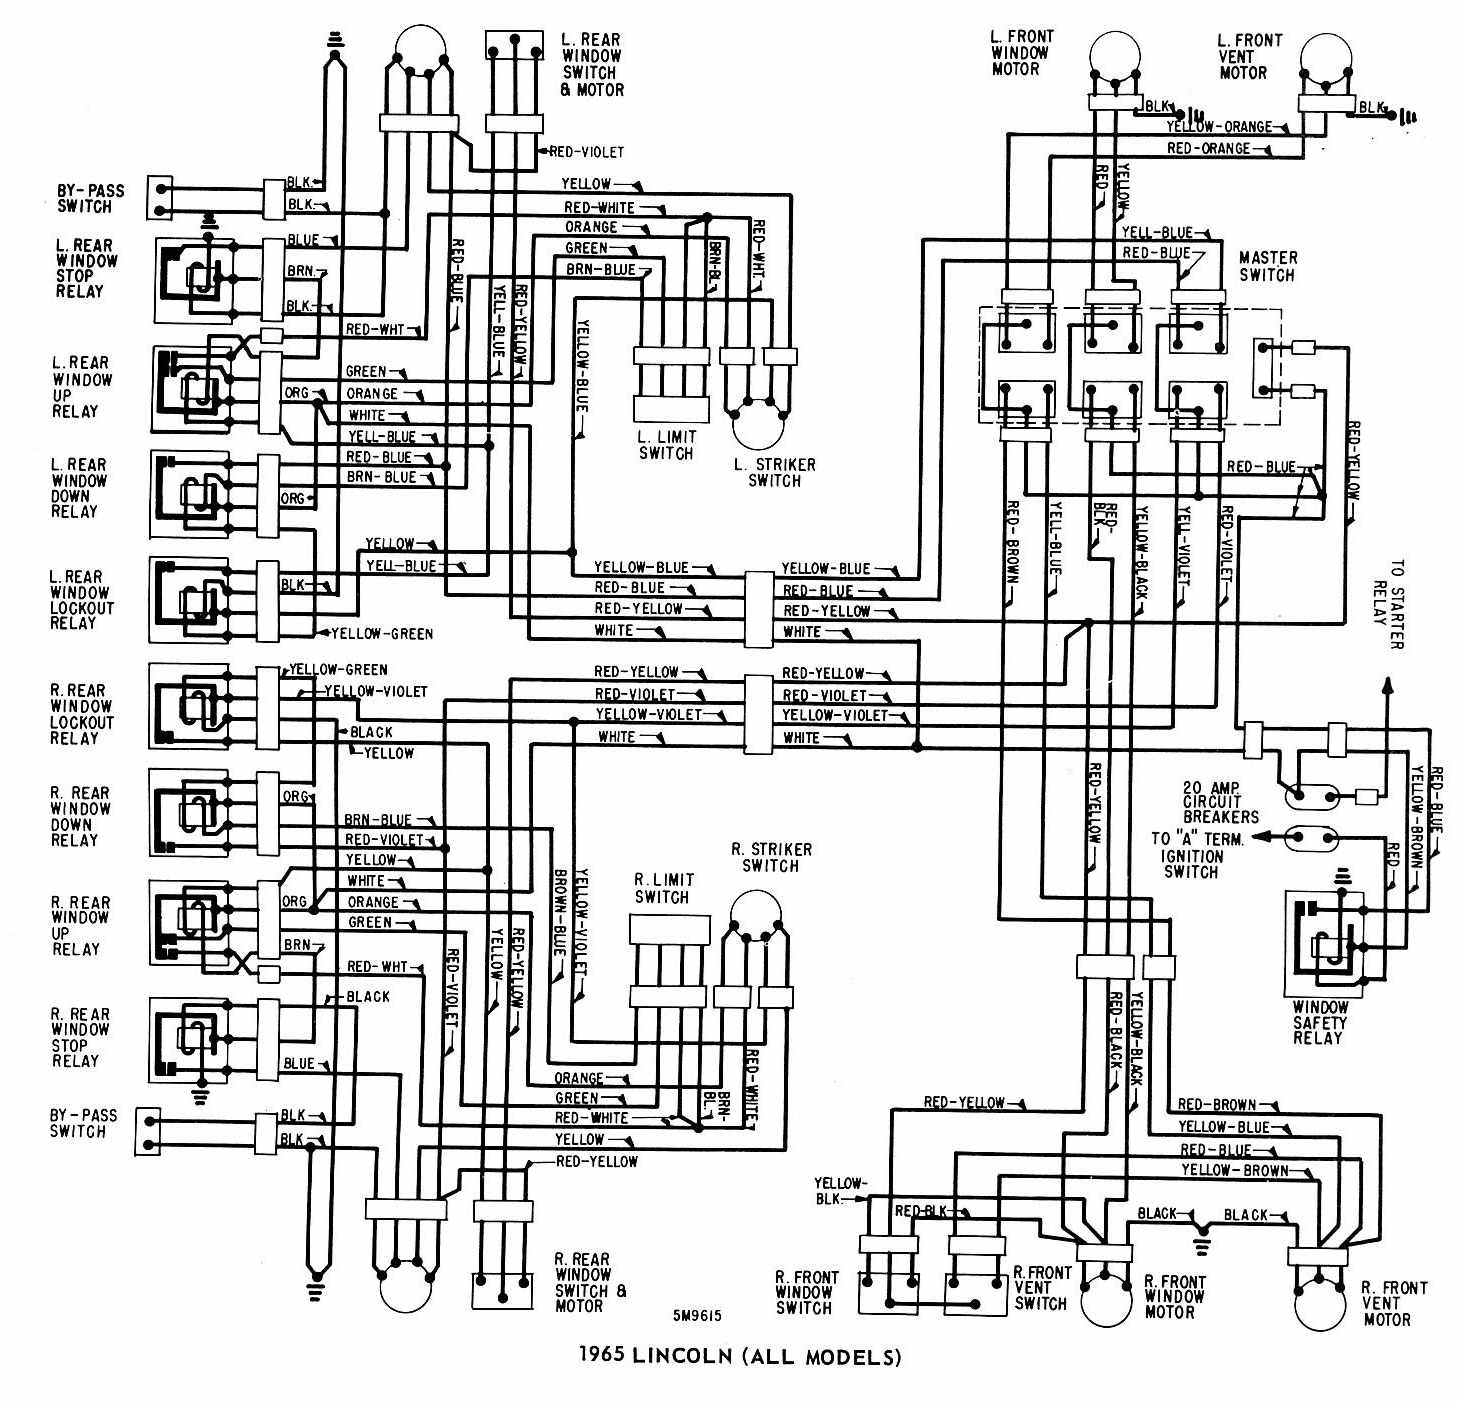 1989 mercury grand marquis wiring diagram  1989  get free